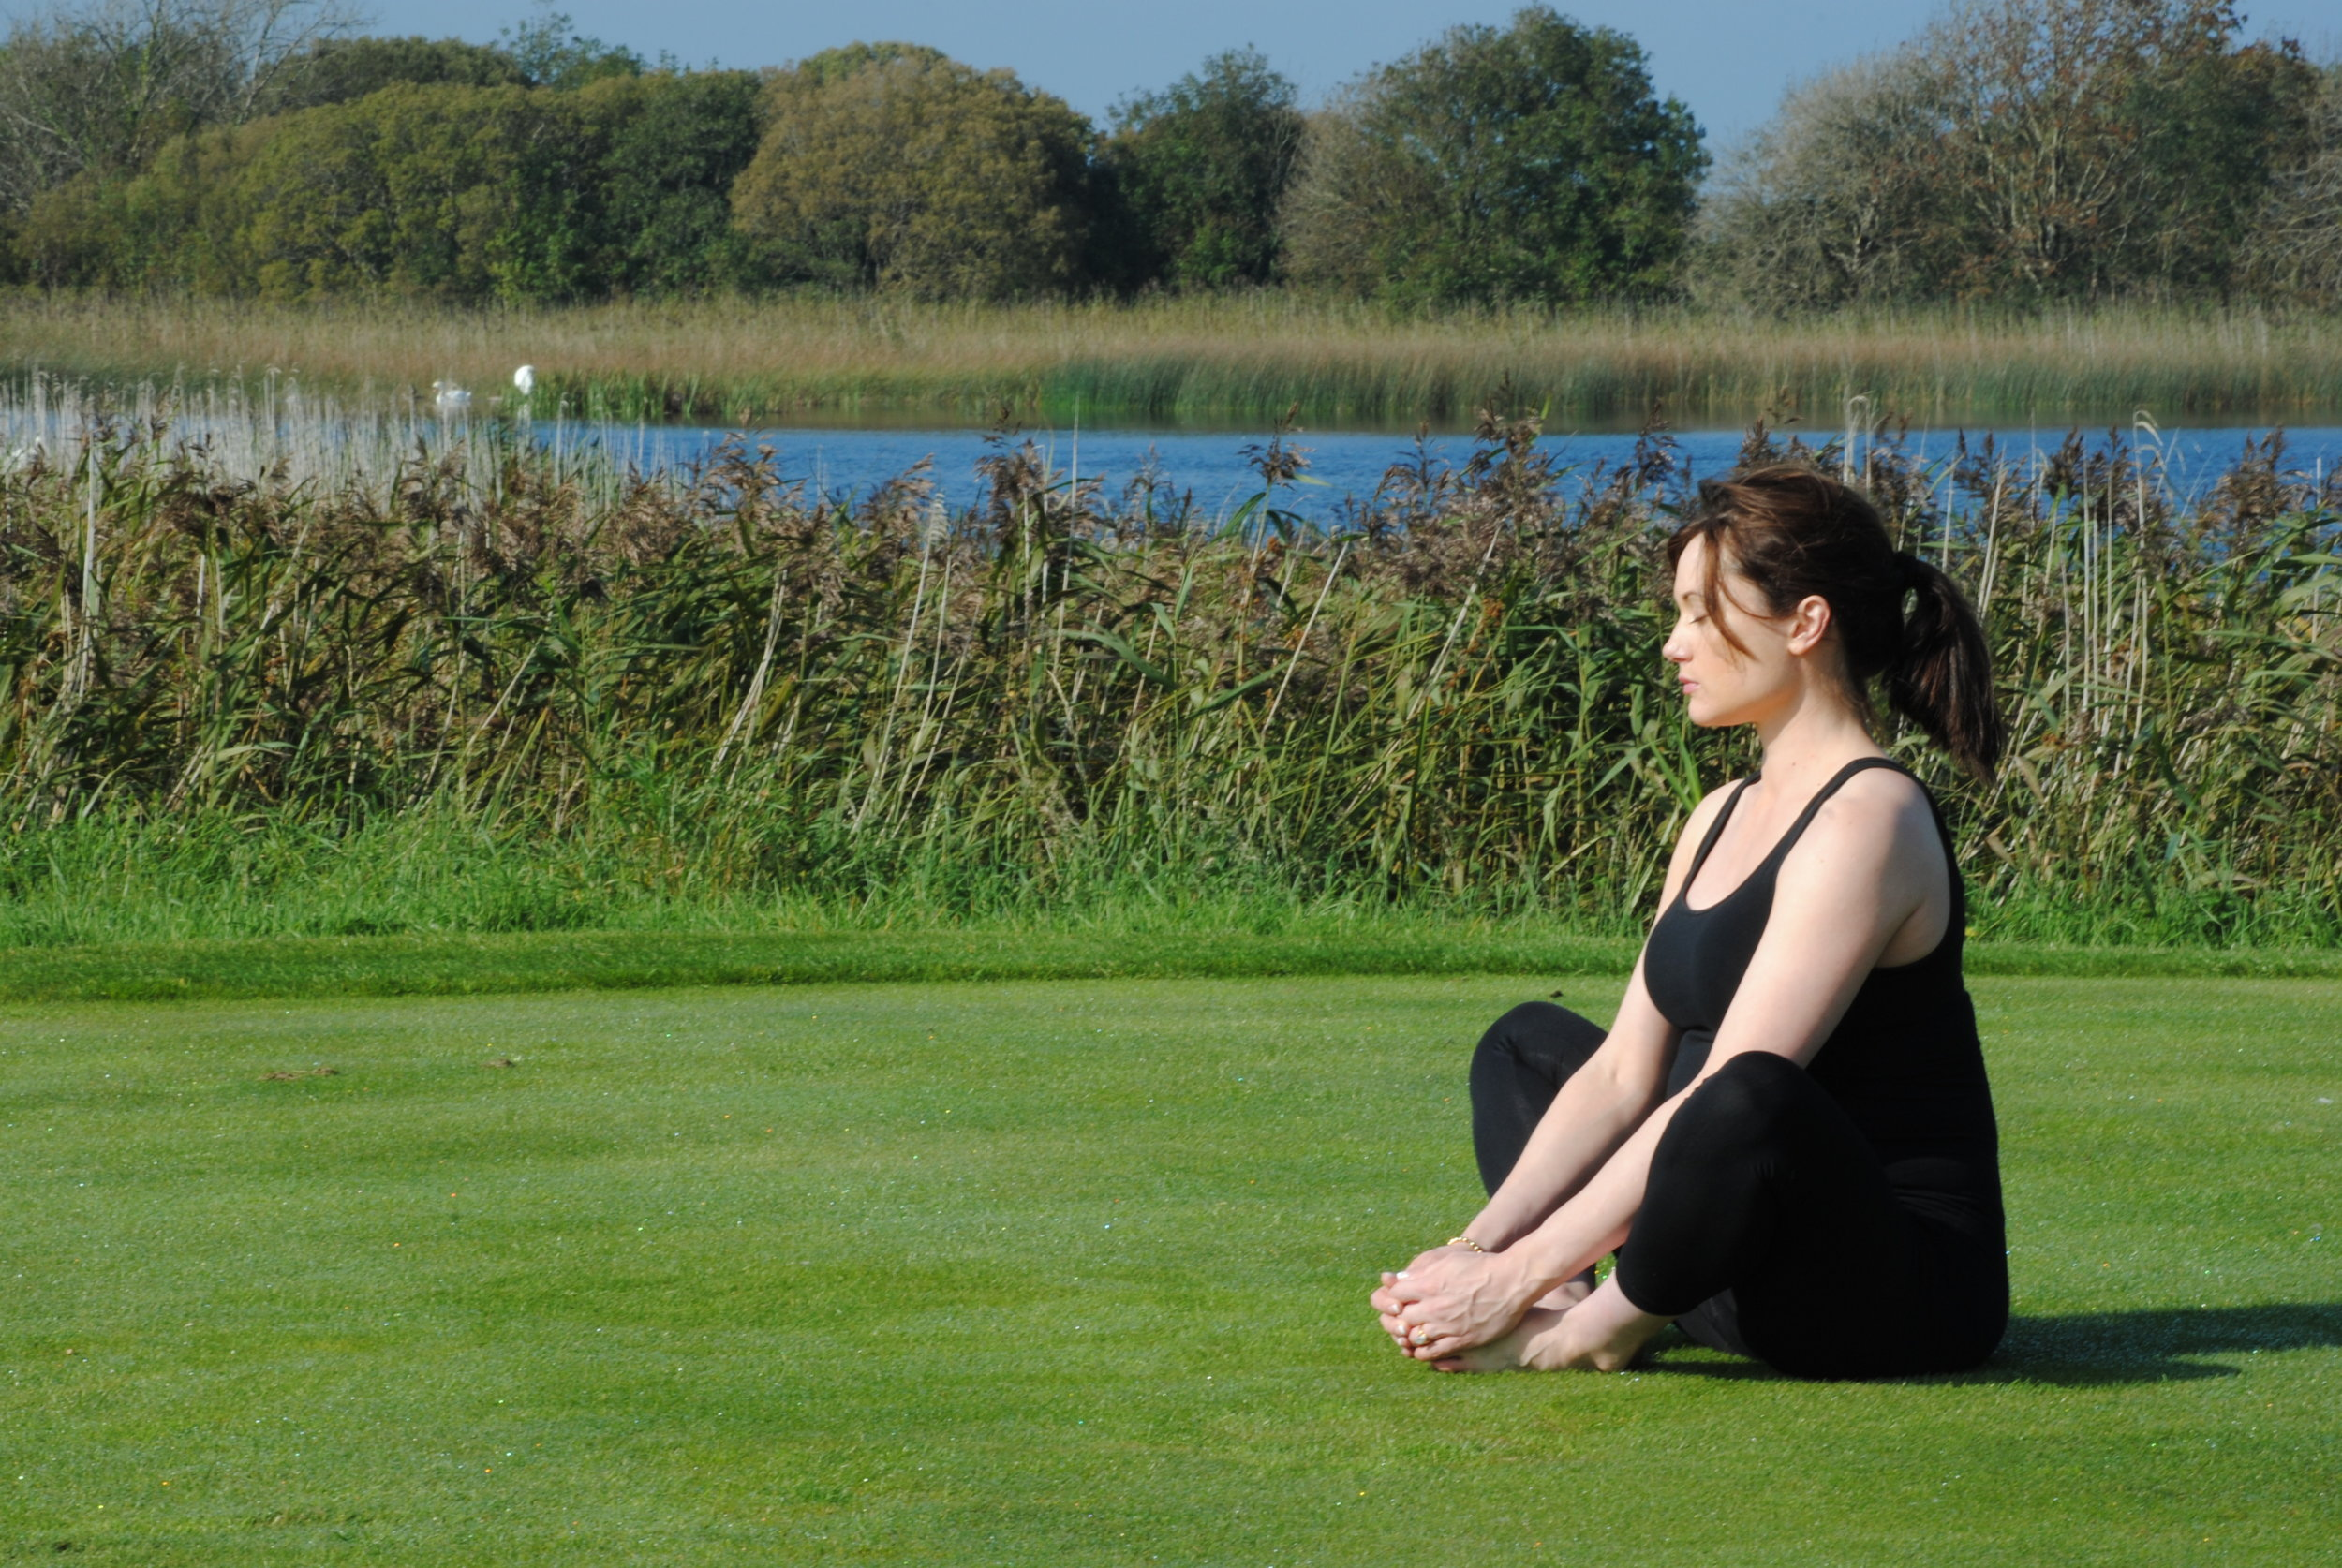 Yoga Galway. Dee enjoying a private session with AKYOGA at Glenlo Abbey.